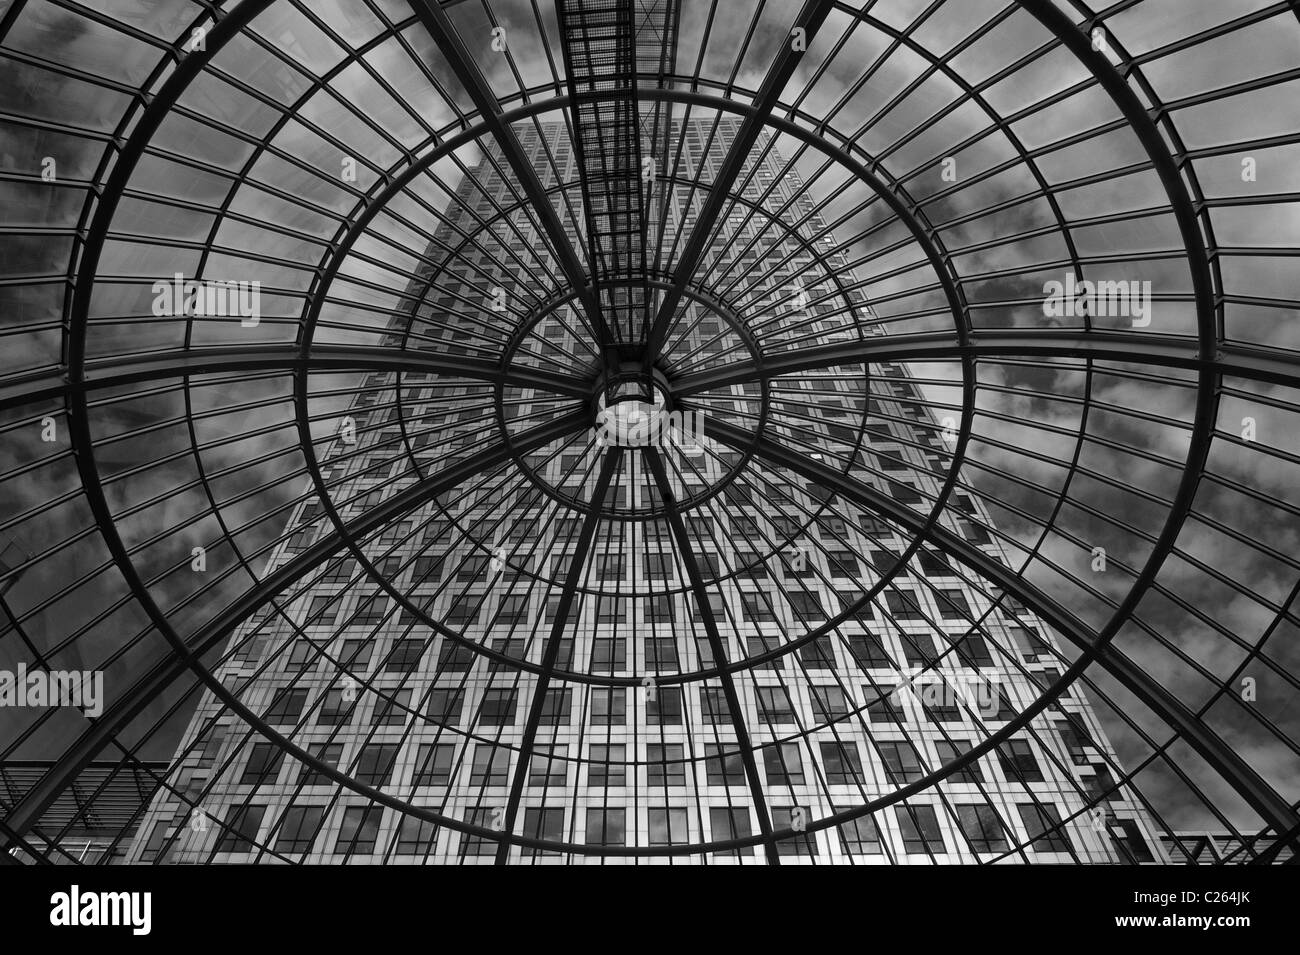 Canary Wharf shot through the glass dome of Cabot Place, Docklands, London - Stock Image